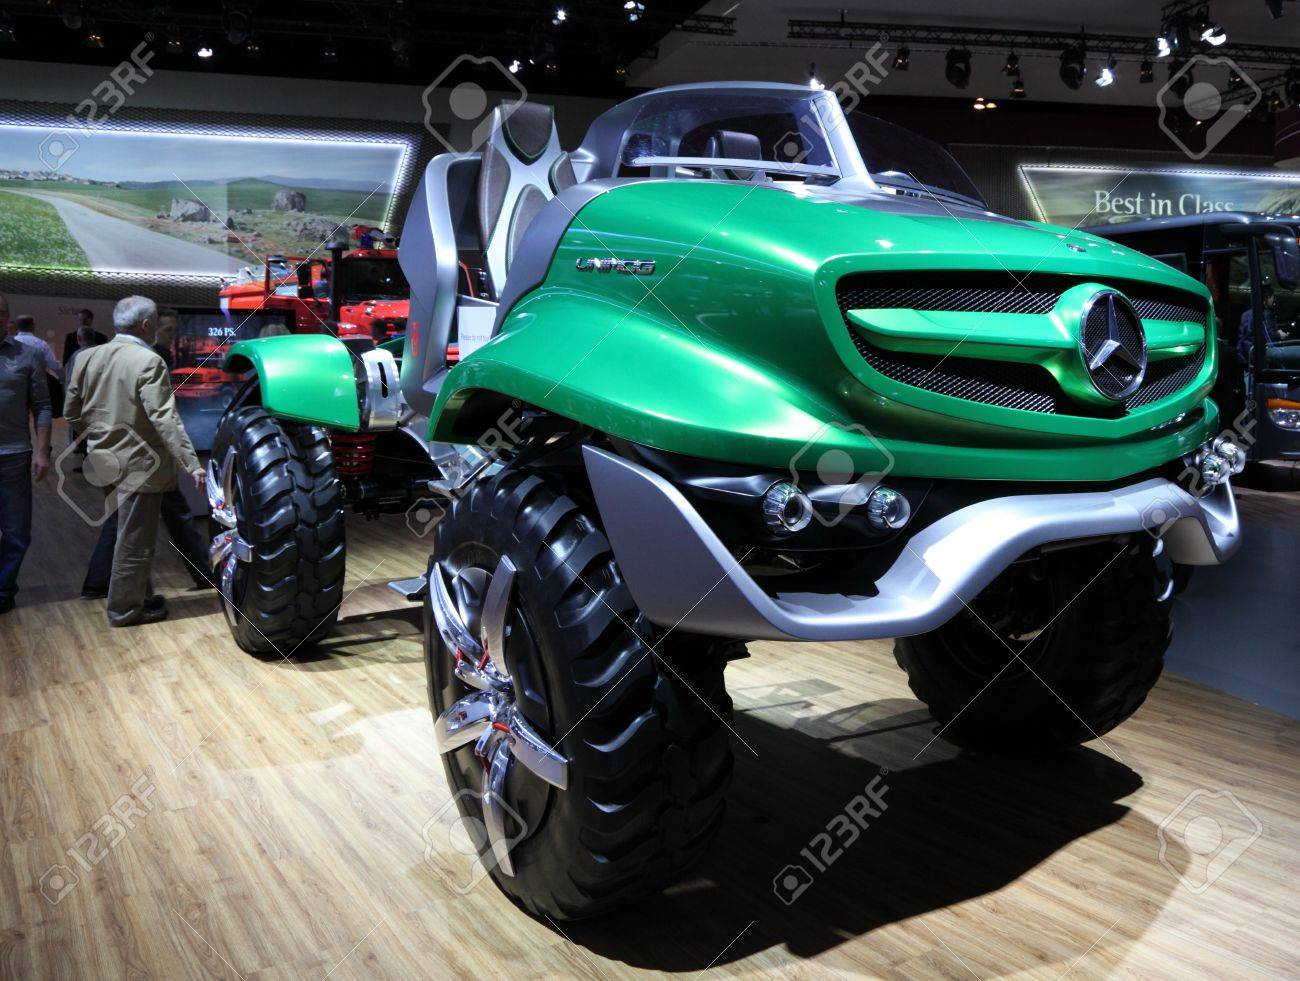 Mercedes Benz Unimog >> Hannover Sep 20 New Mercedes Benz Unimog Concept At The International